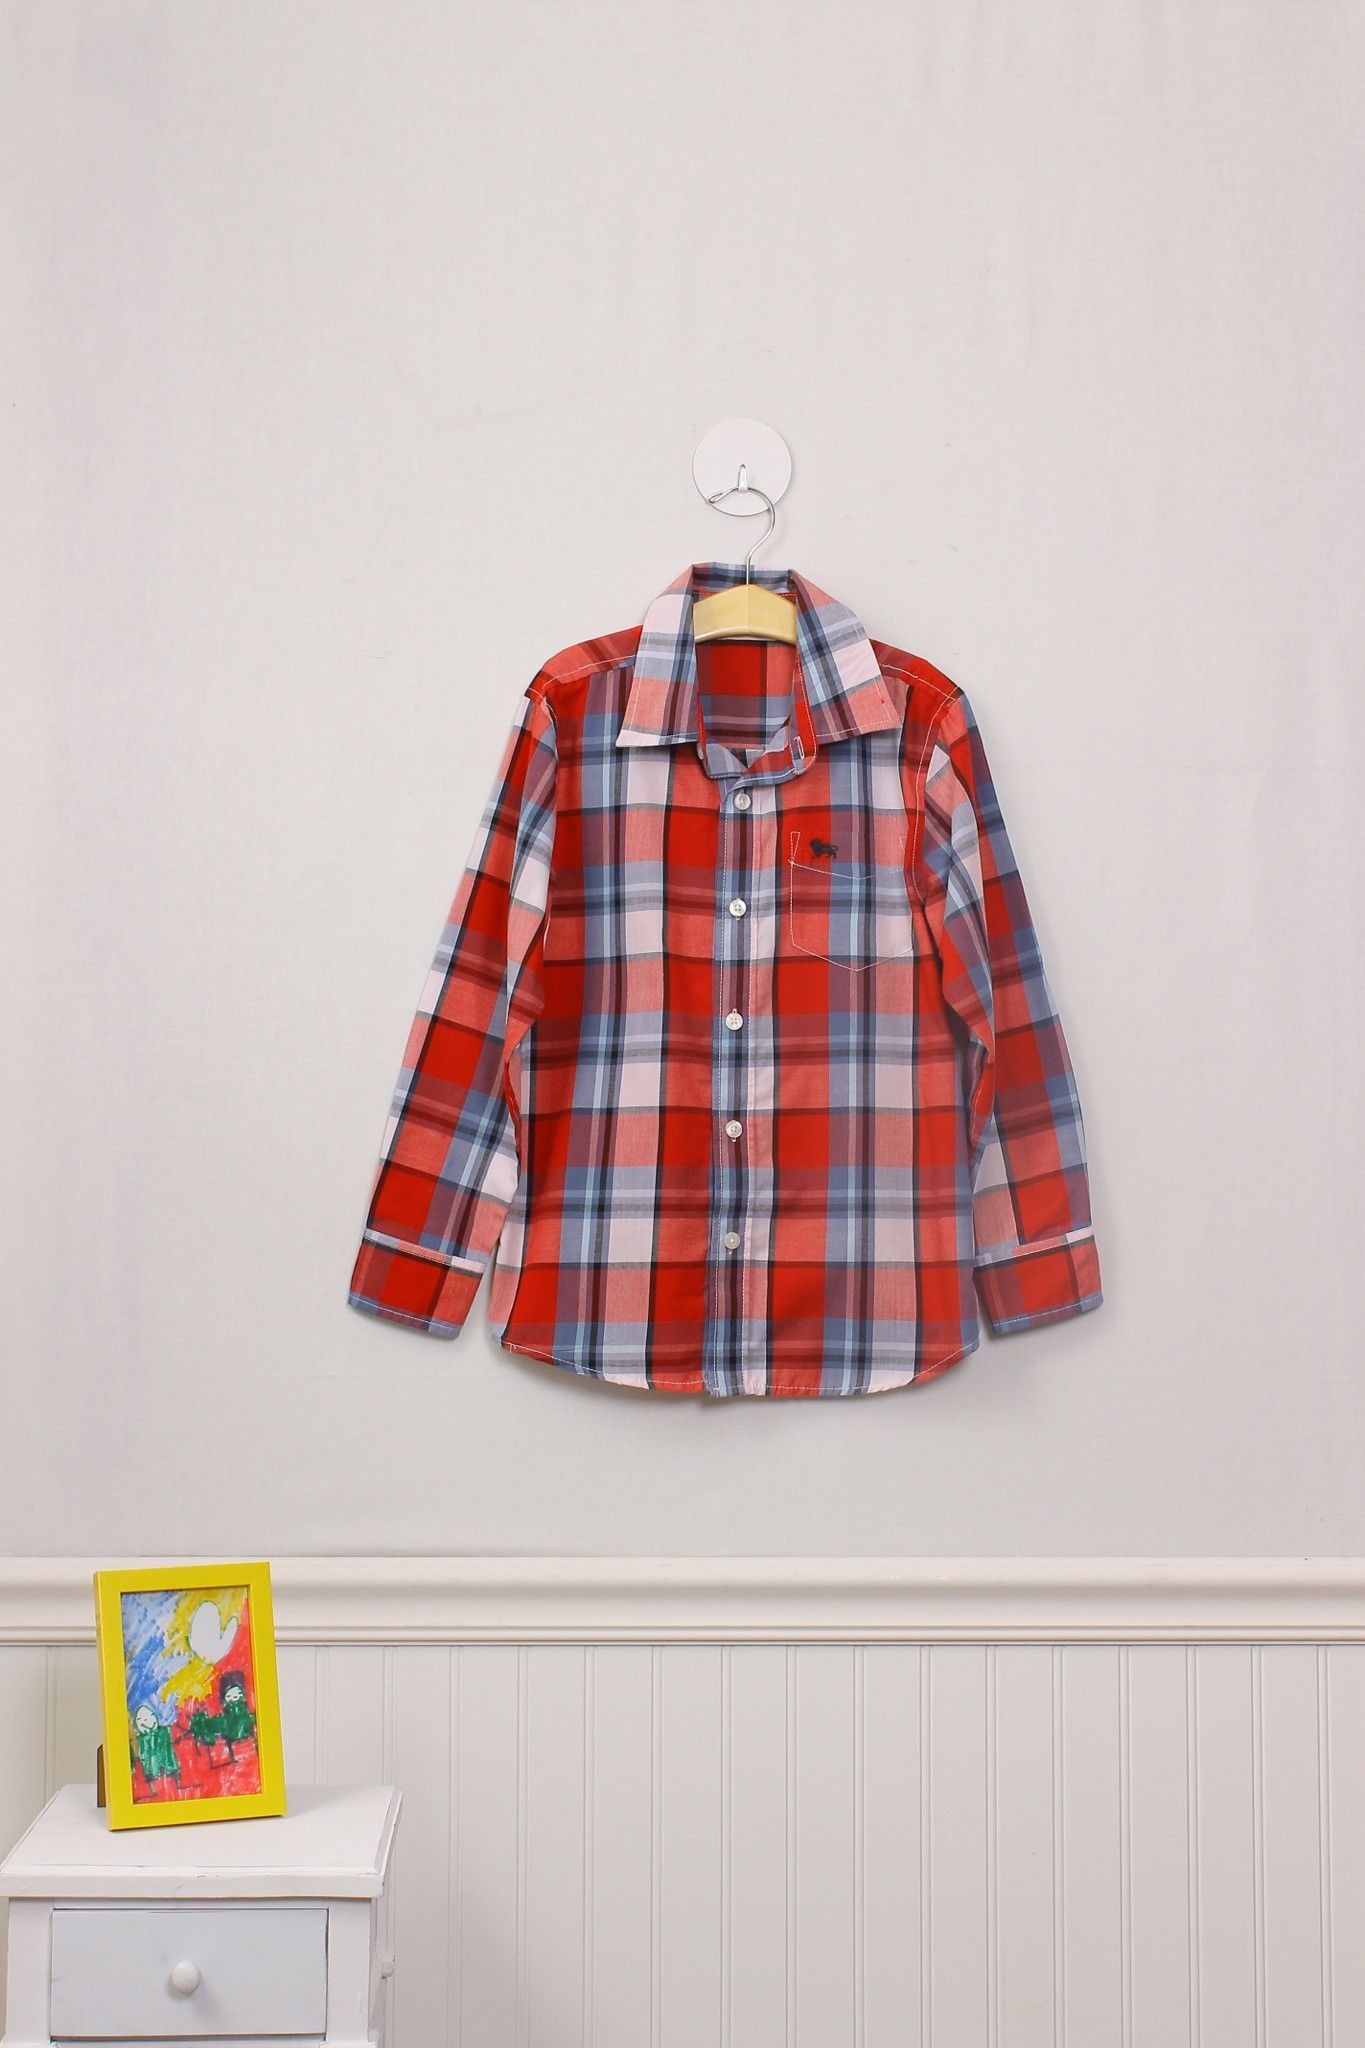 Moxie Jean now has single items! Like this great long sleeve button down shirt for a size 8 boy. Just $6.99 at www.MoxieJean.com